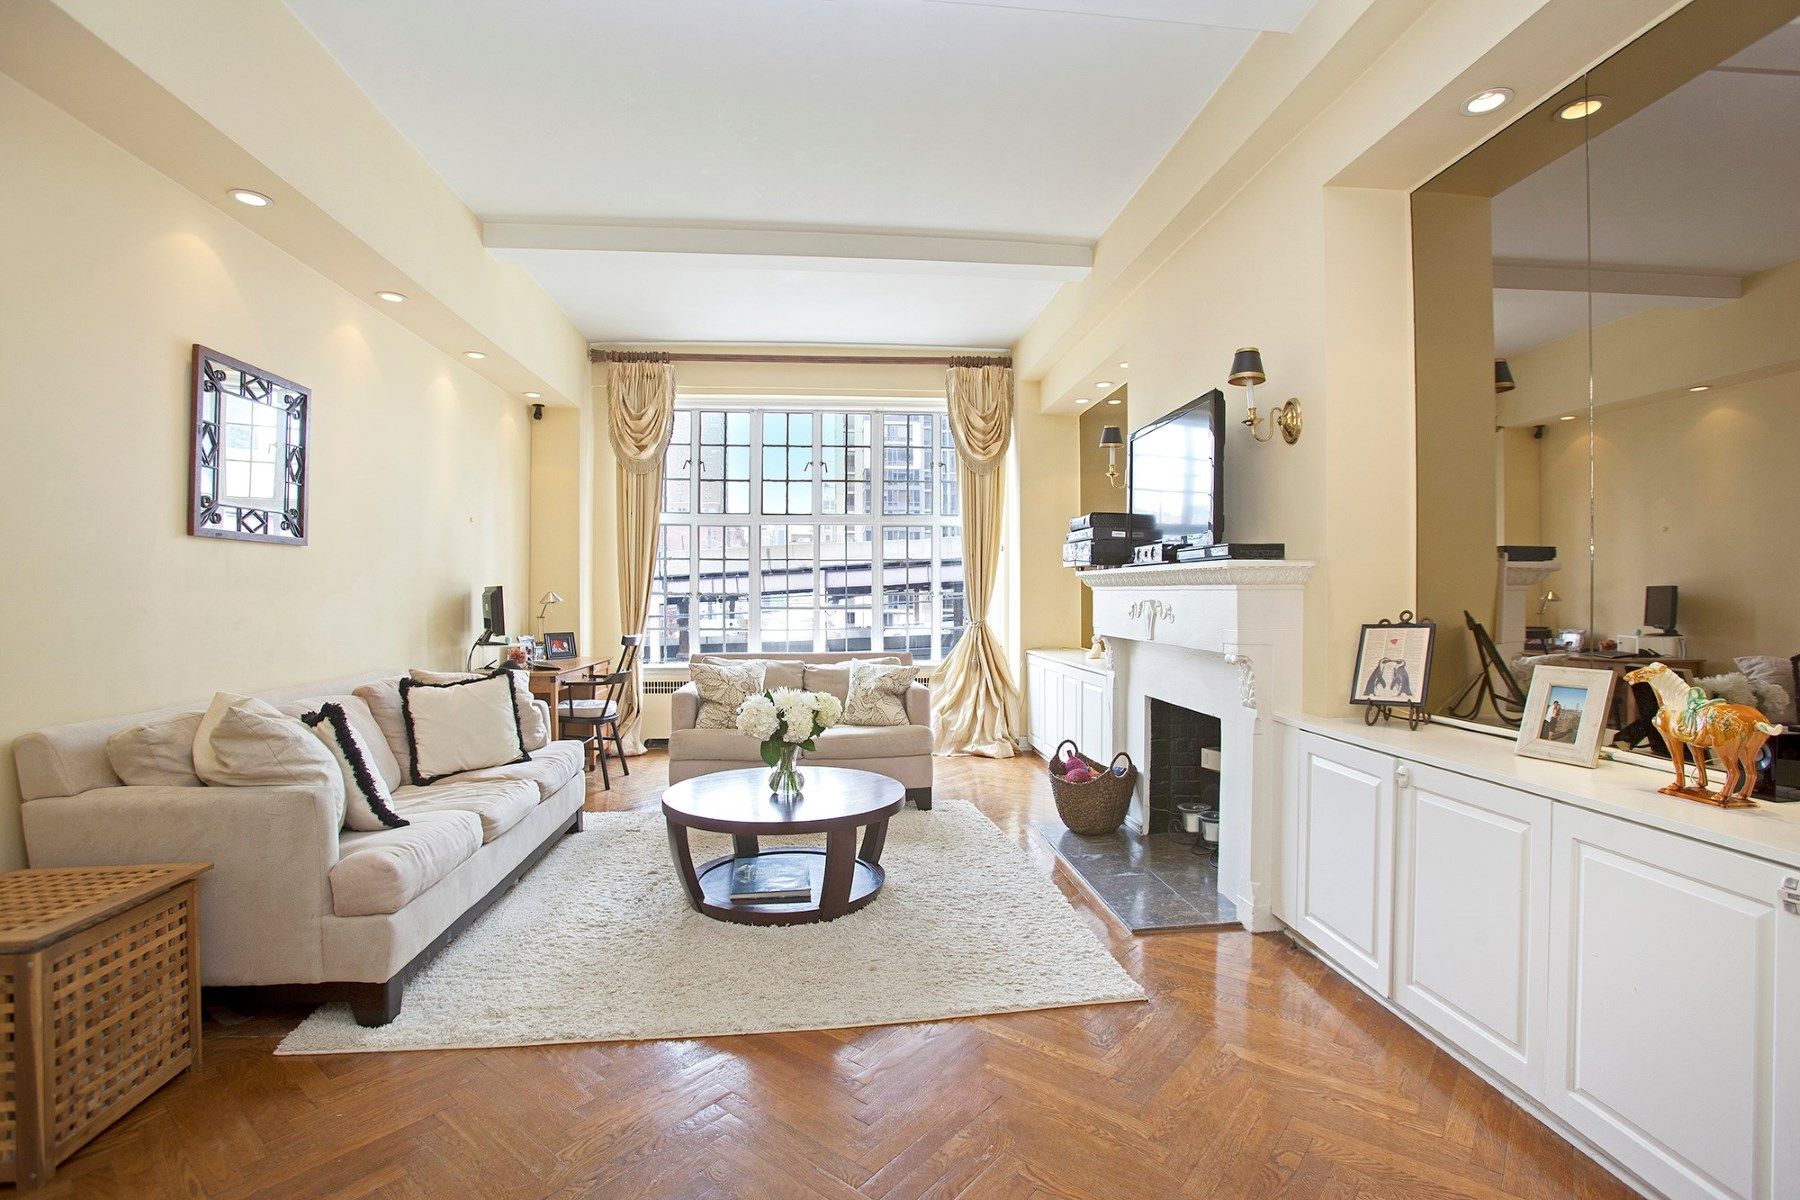 Co-op for Sale at 400 East 59th Street 400 East 59th Street Apt 6c Sutton Place, New York, New York 10022 United States